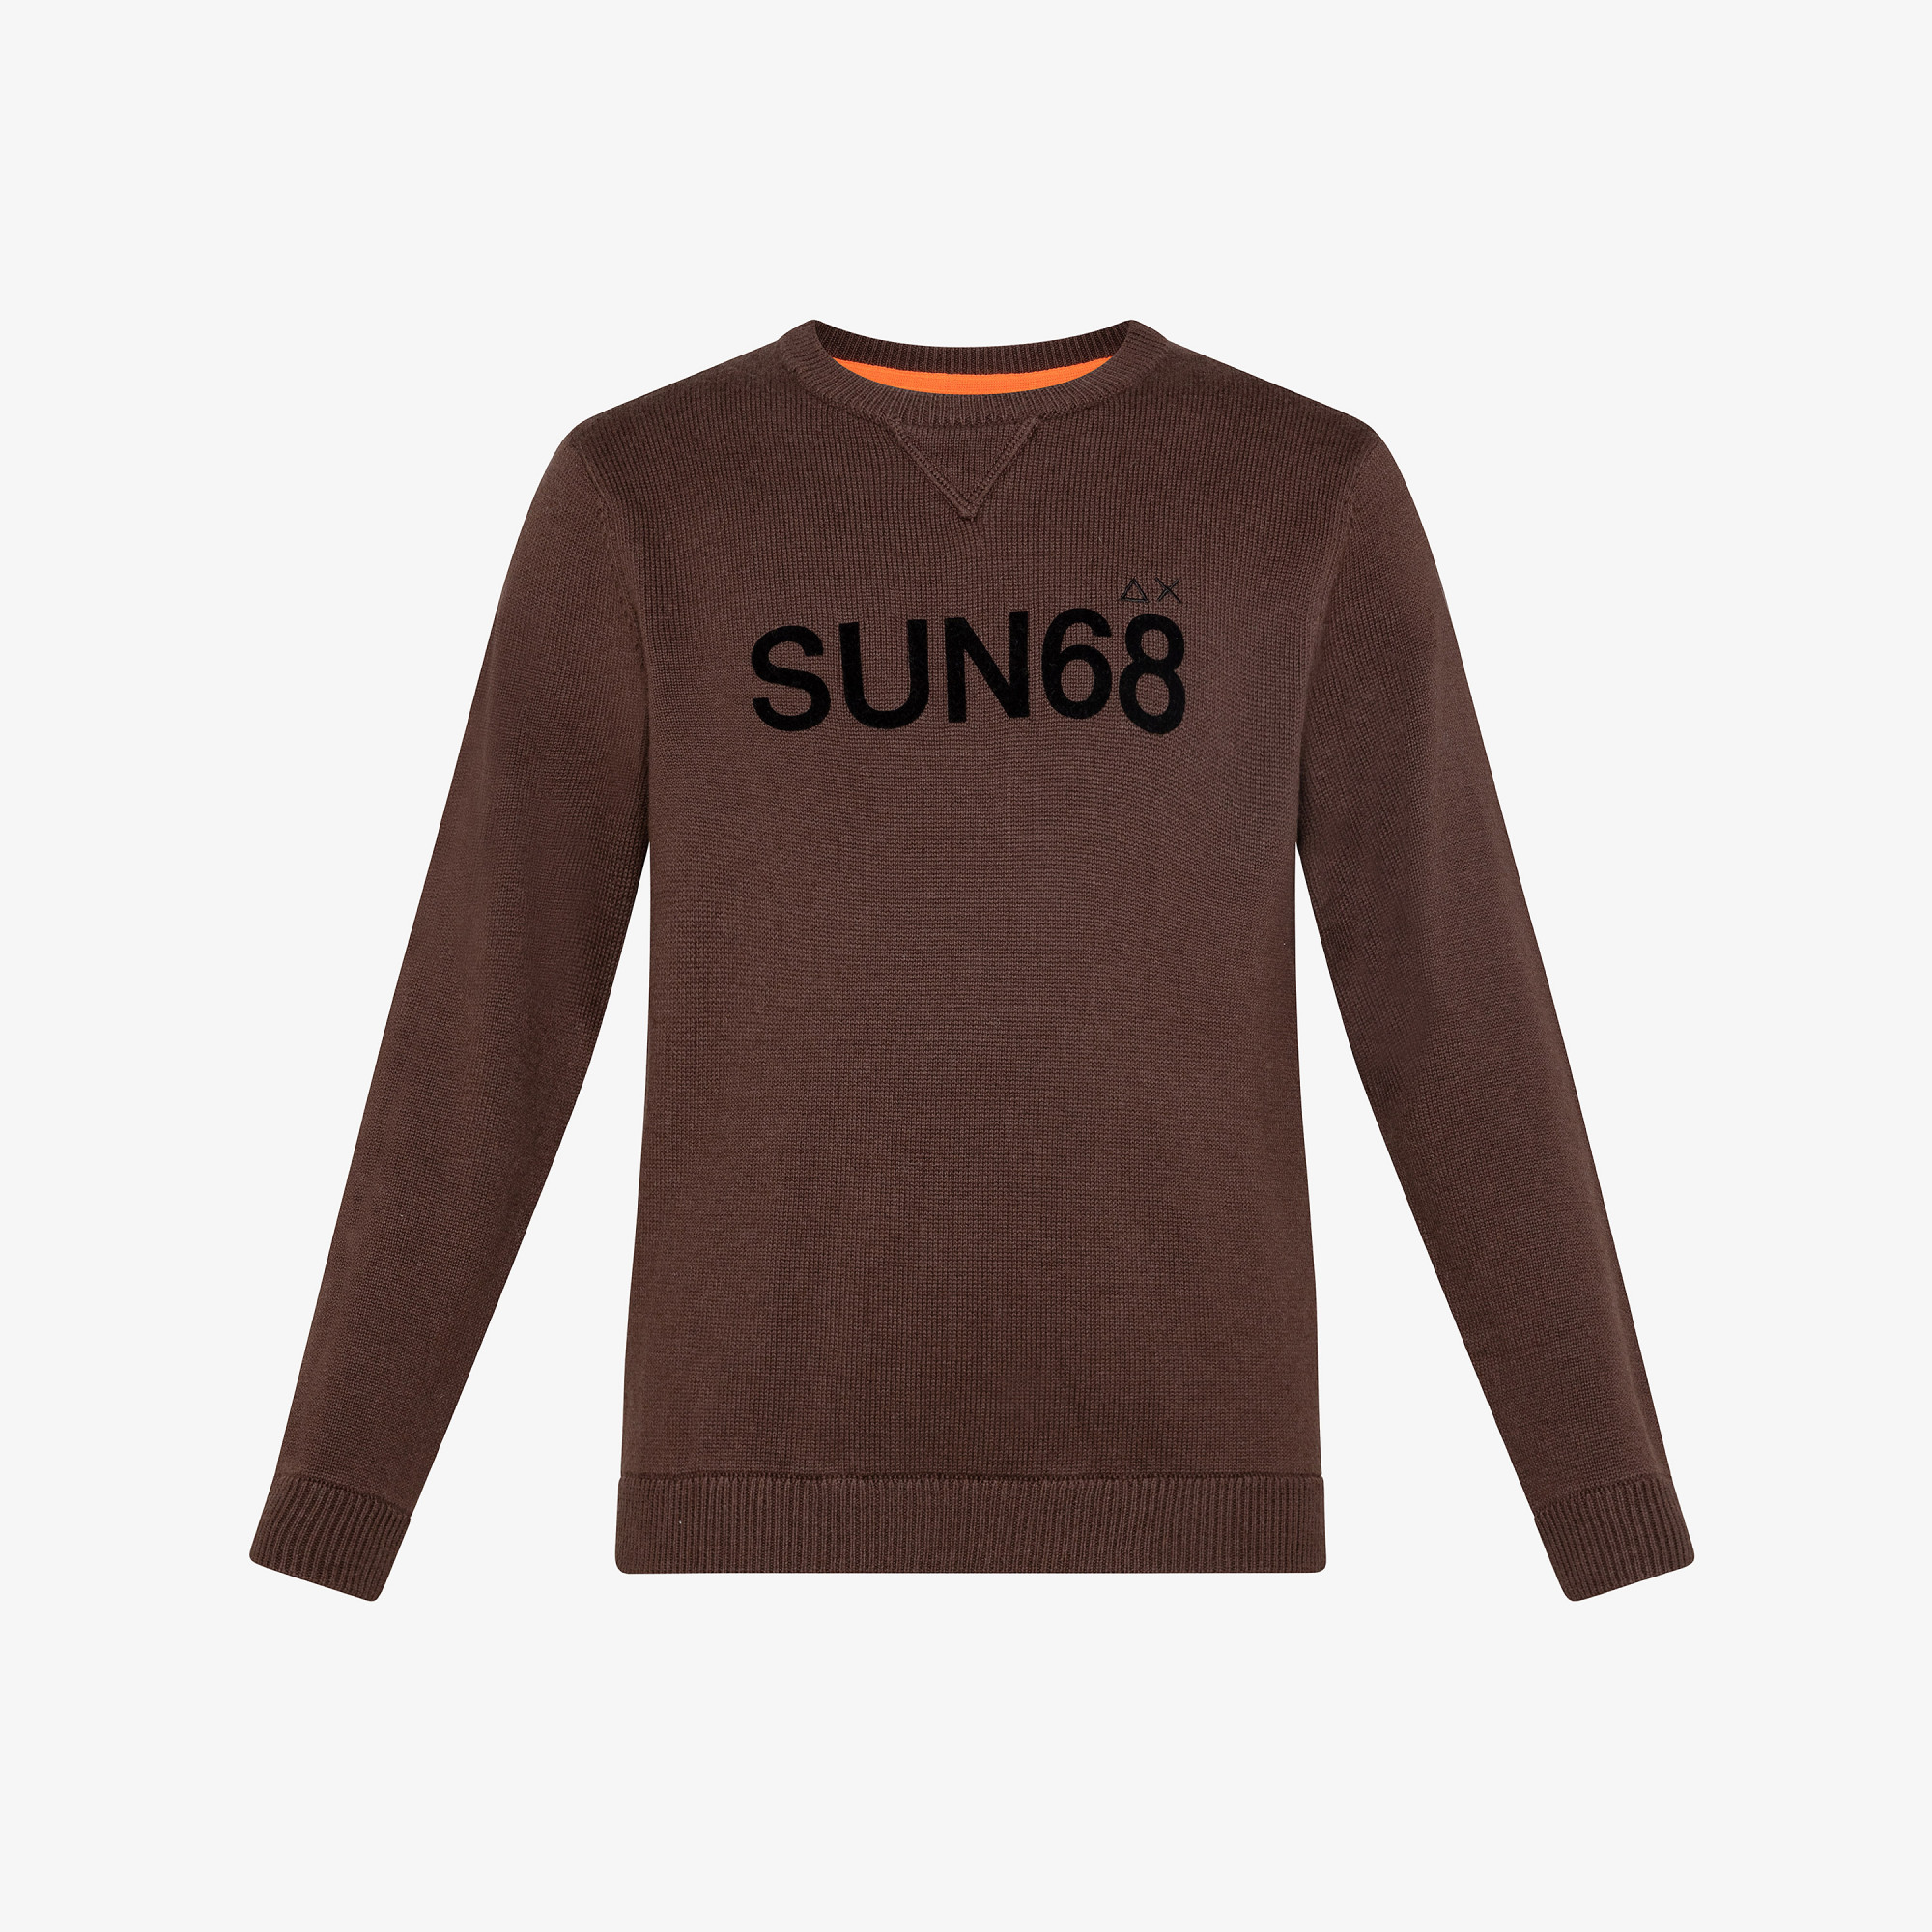 BOY'S ROUND LETTERING ON CHEST BROWN